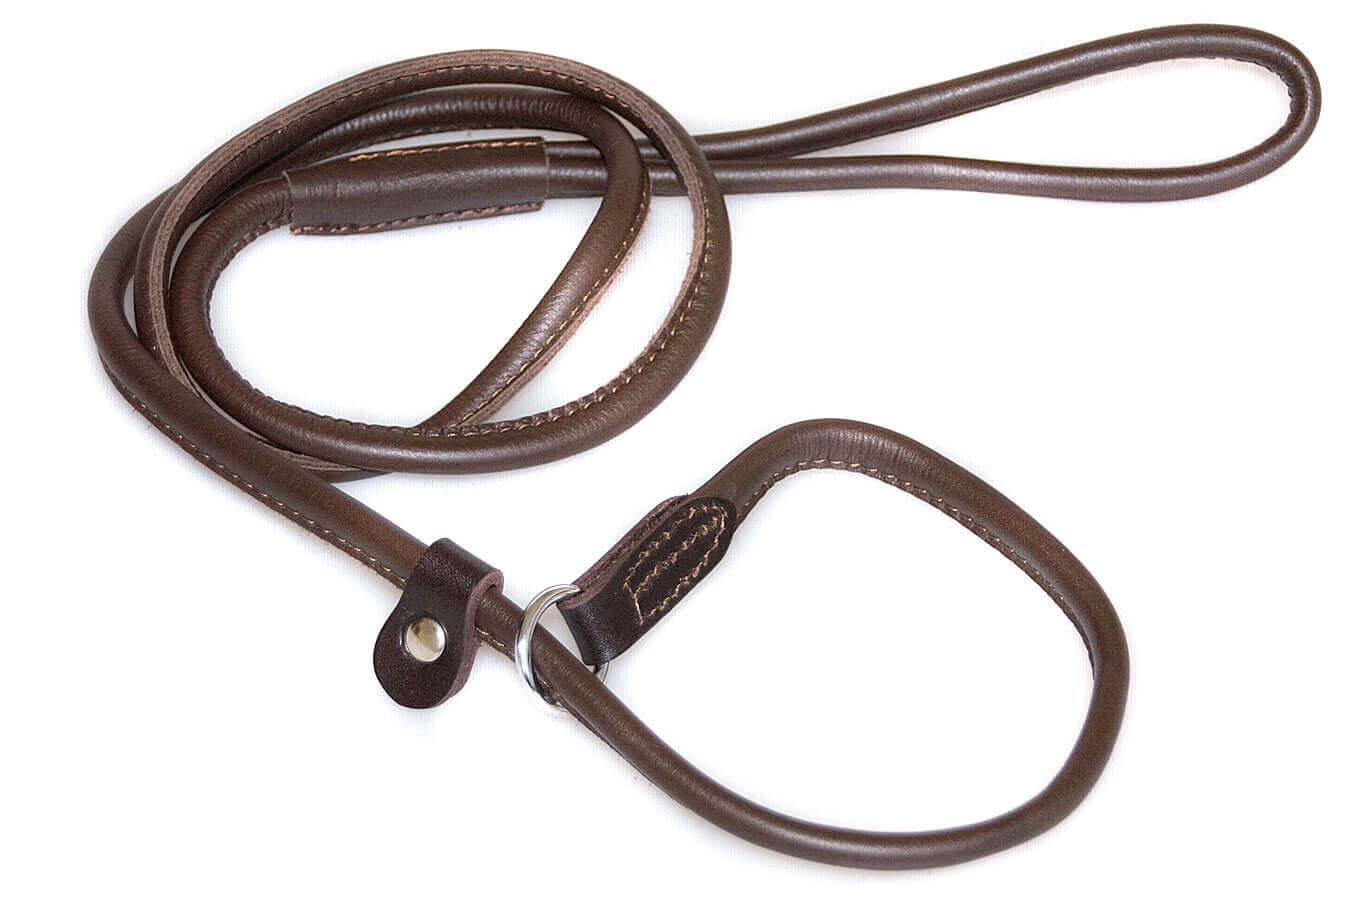 Premium brown rolled leather slip lead